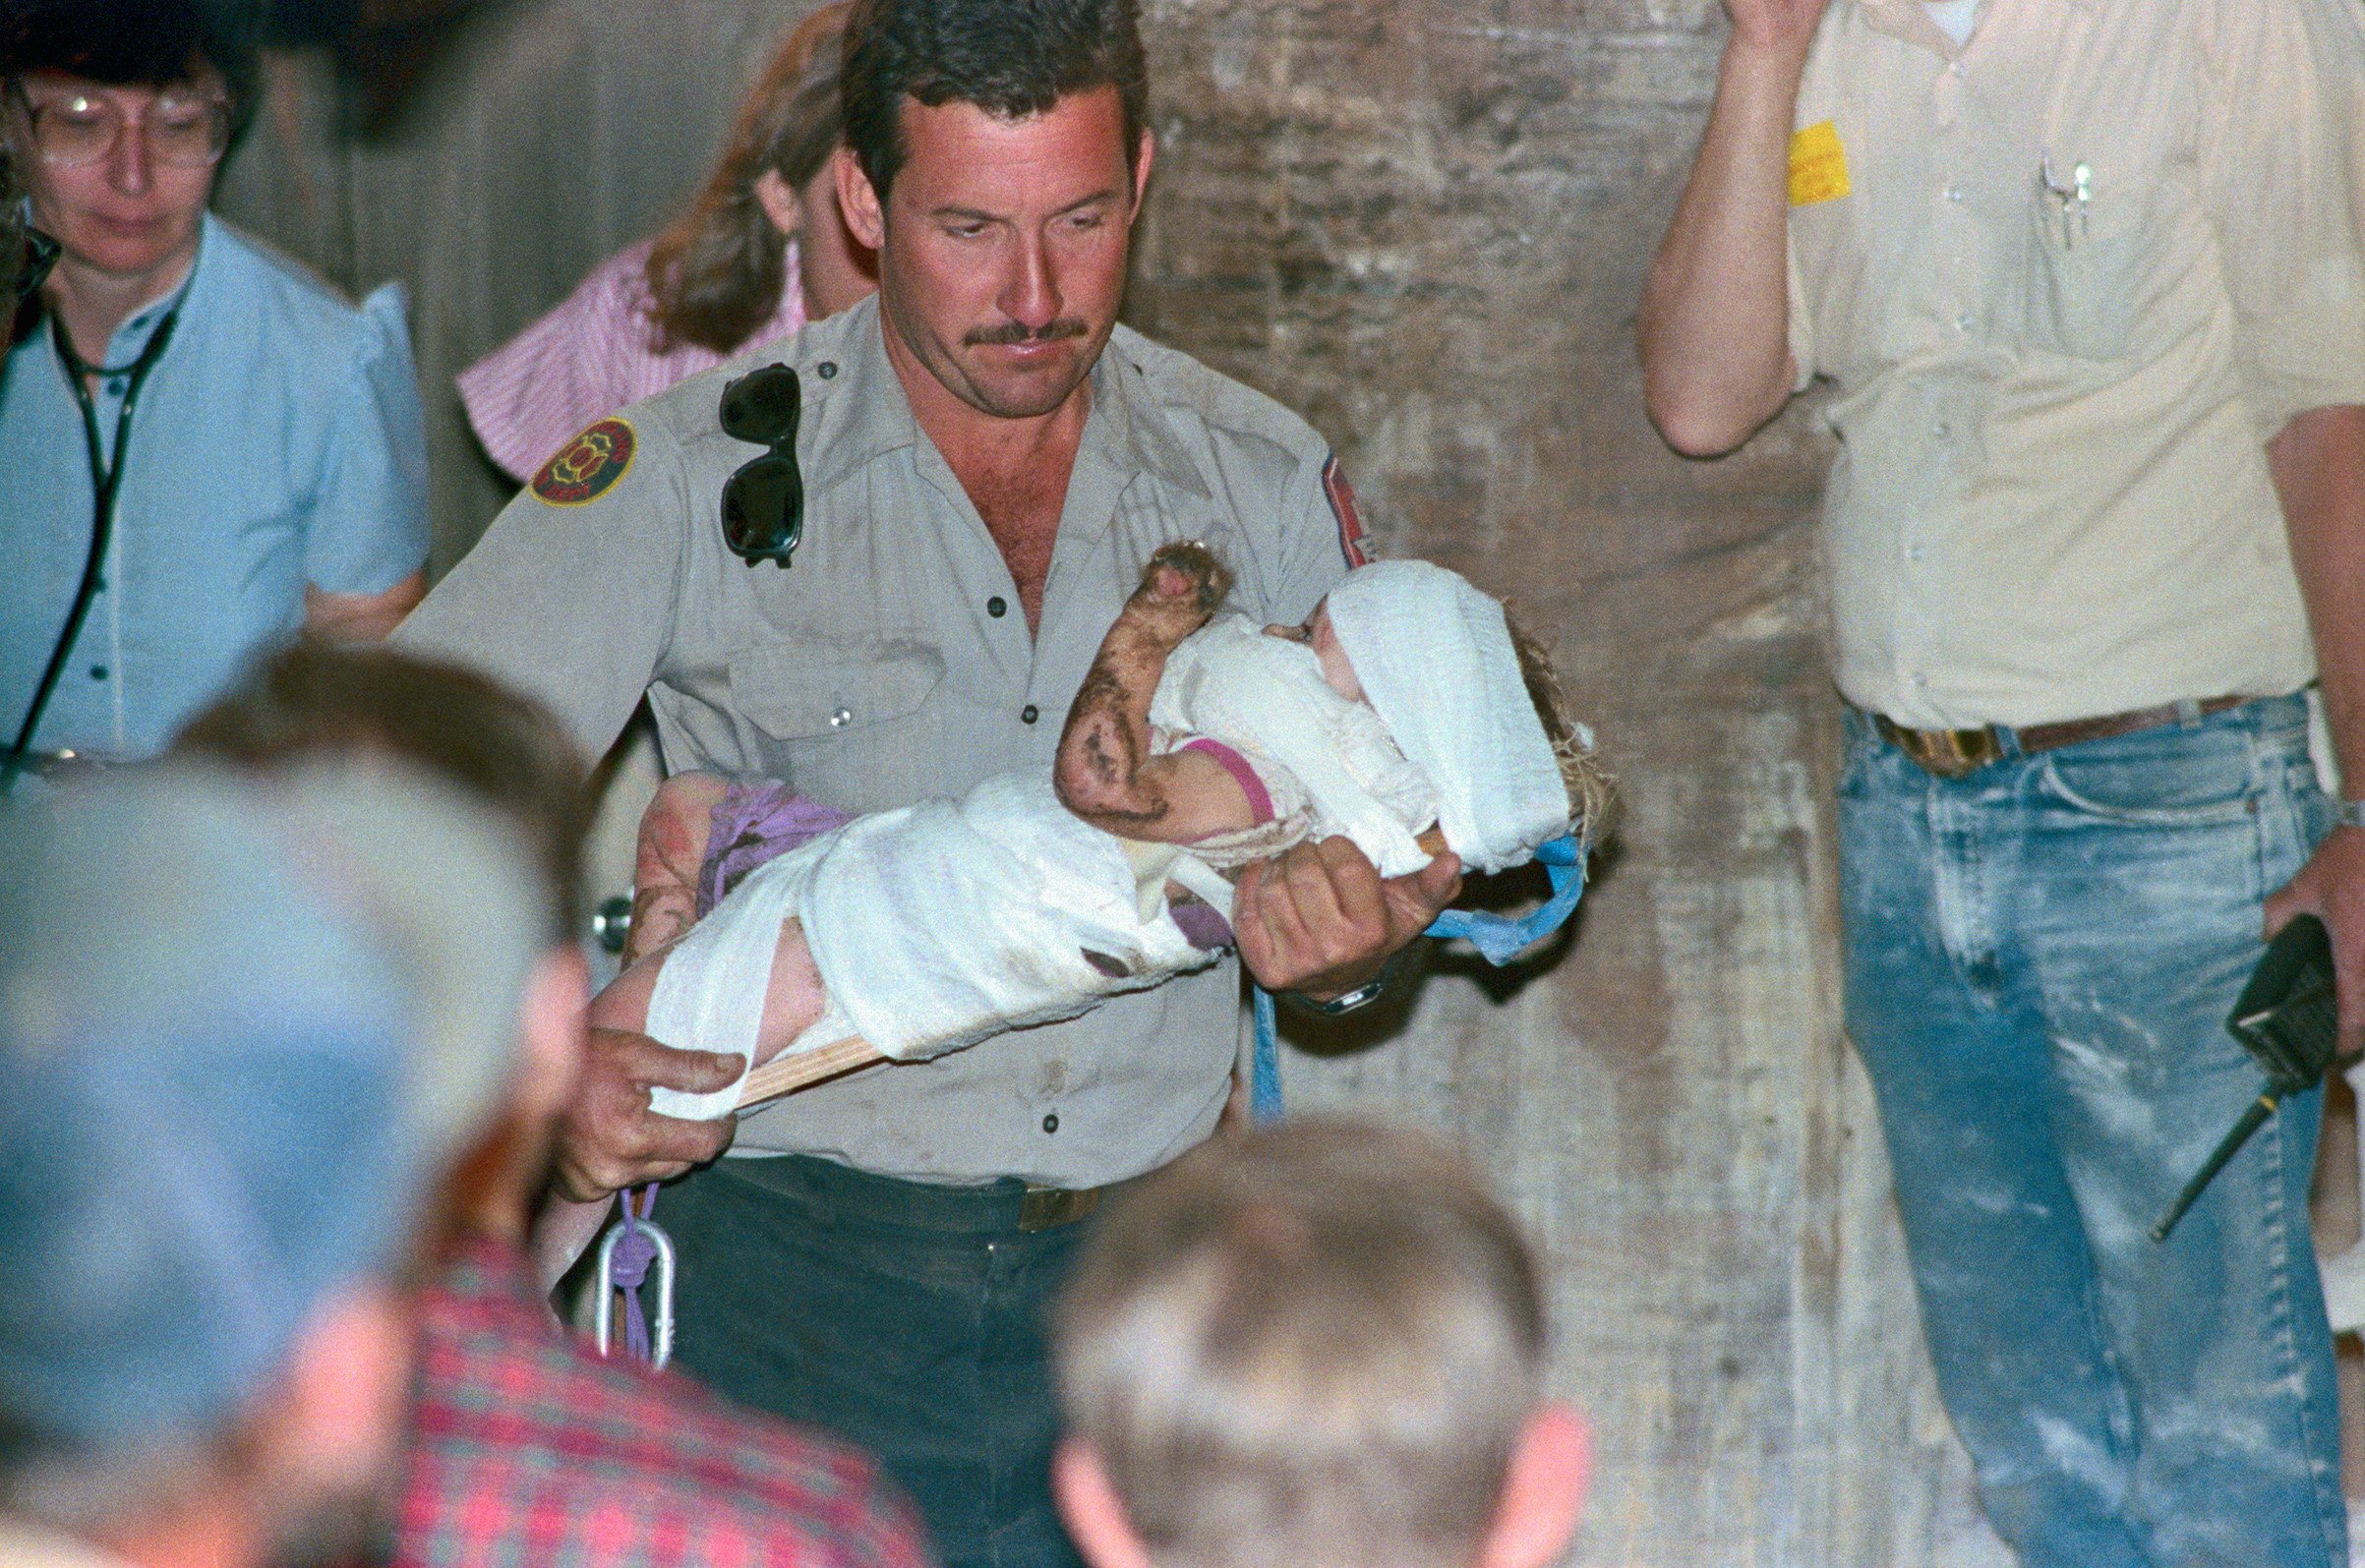 Rescuer rushes baby rescued from fall into a well where lay for three days before she was rescued, Oct. 16, 1987.